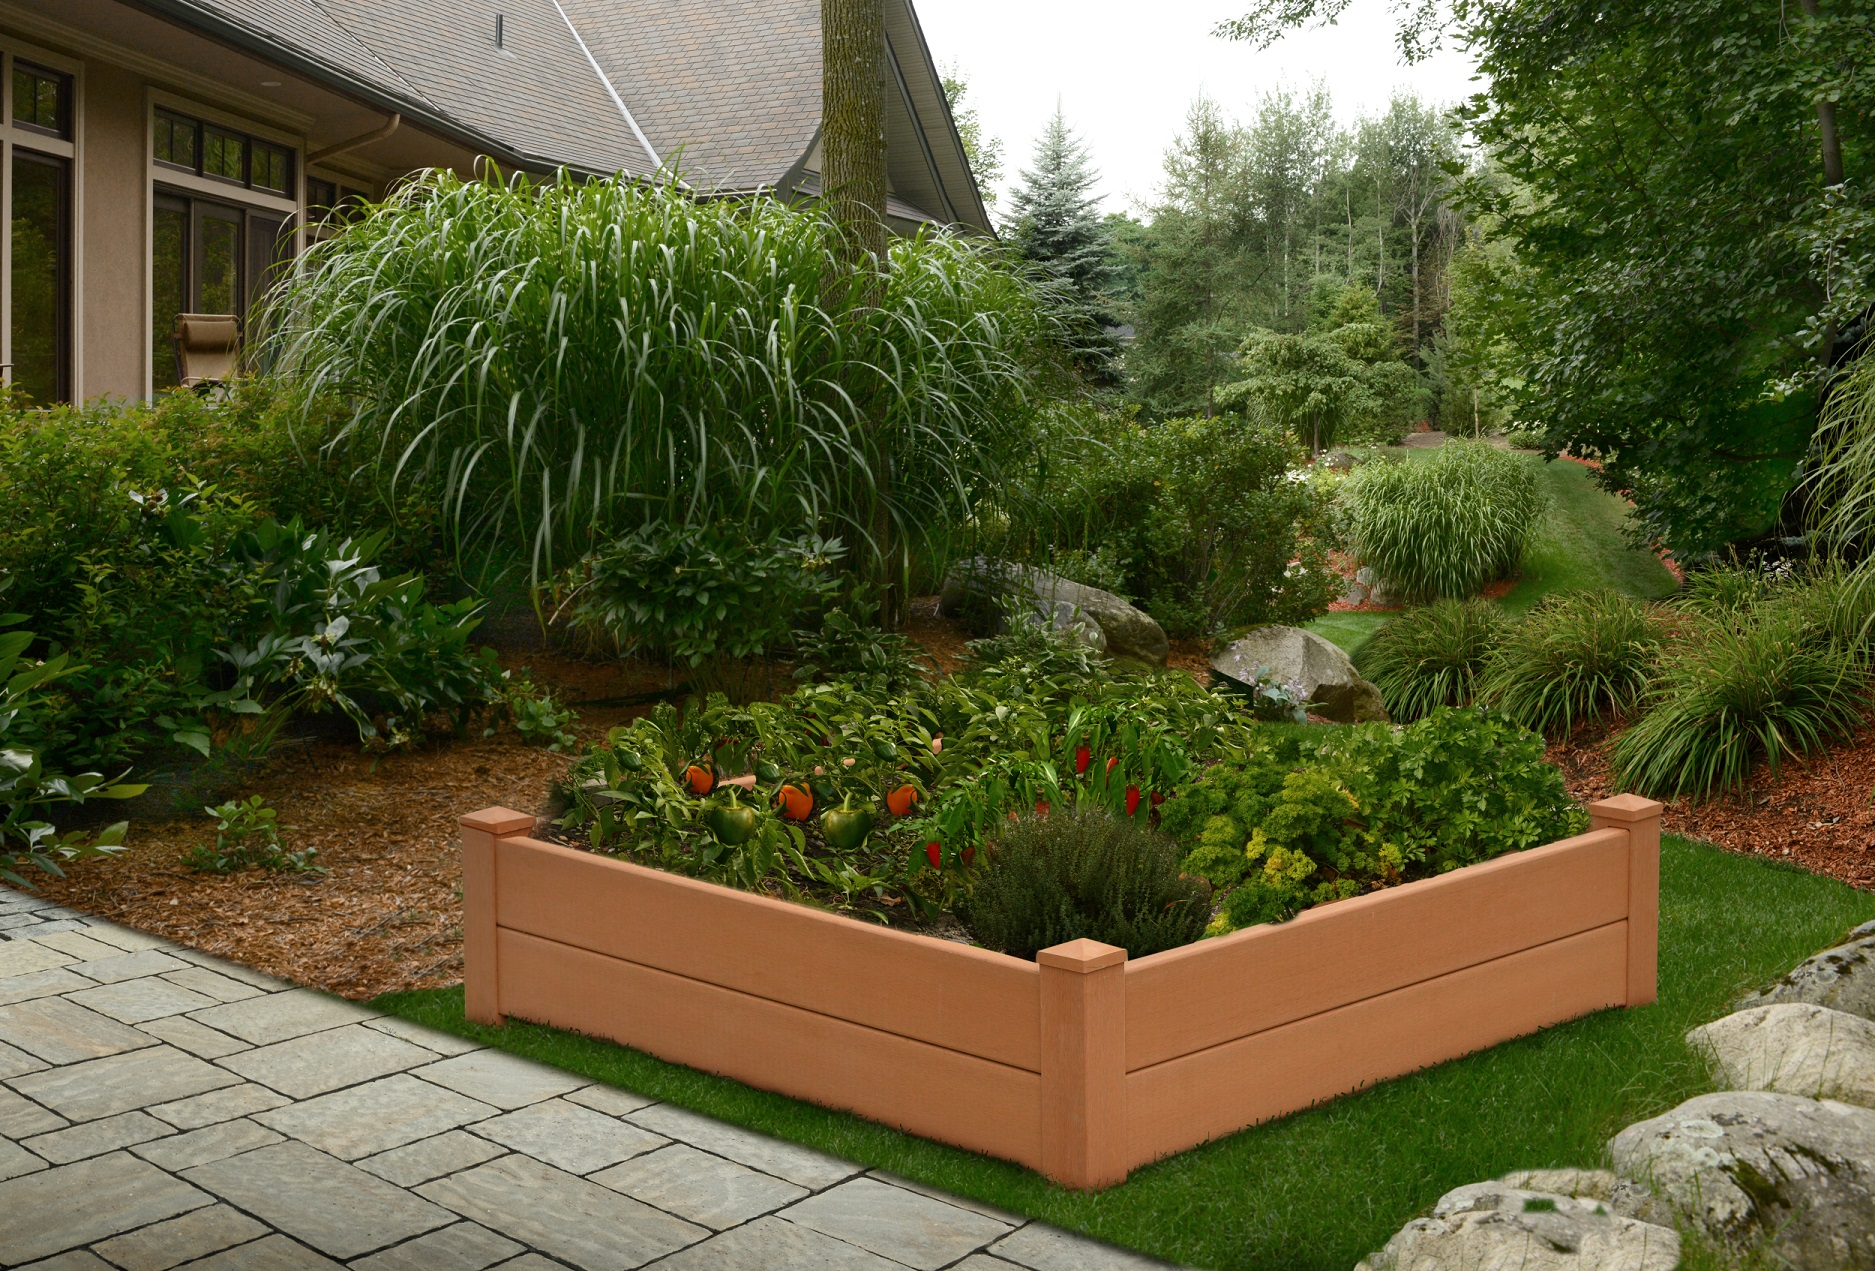 Garden Bed Raised Composite Product Photo